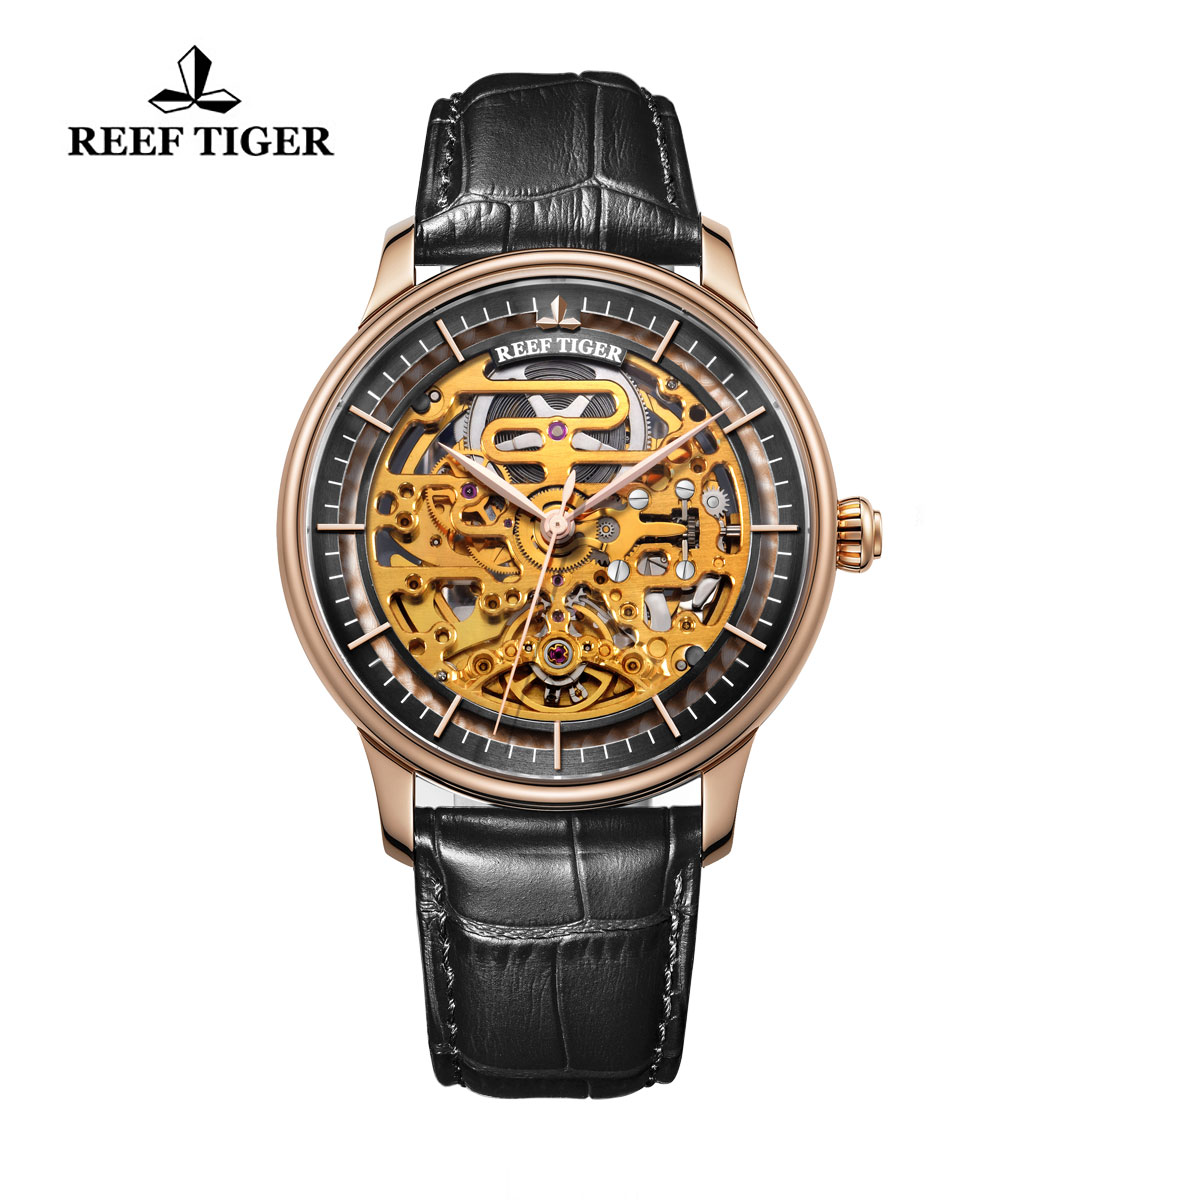 Reef Tiger Musician Casual Watches Automatic Watch Rose Gold Case Leather Strap RGA1975-PBB